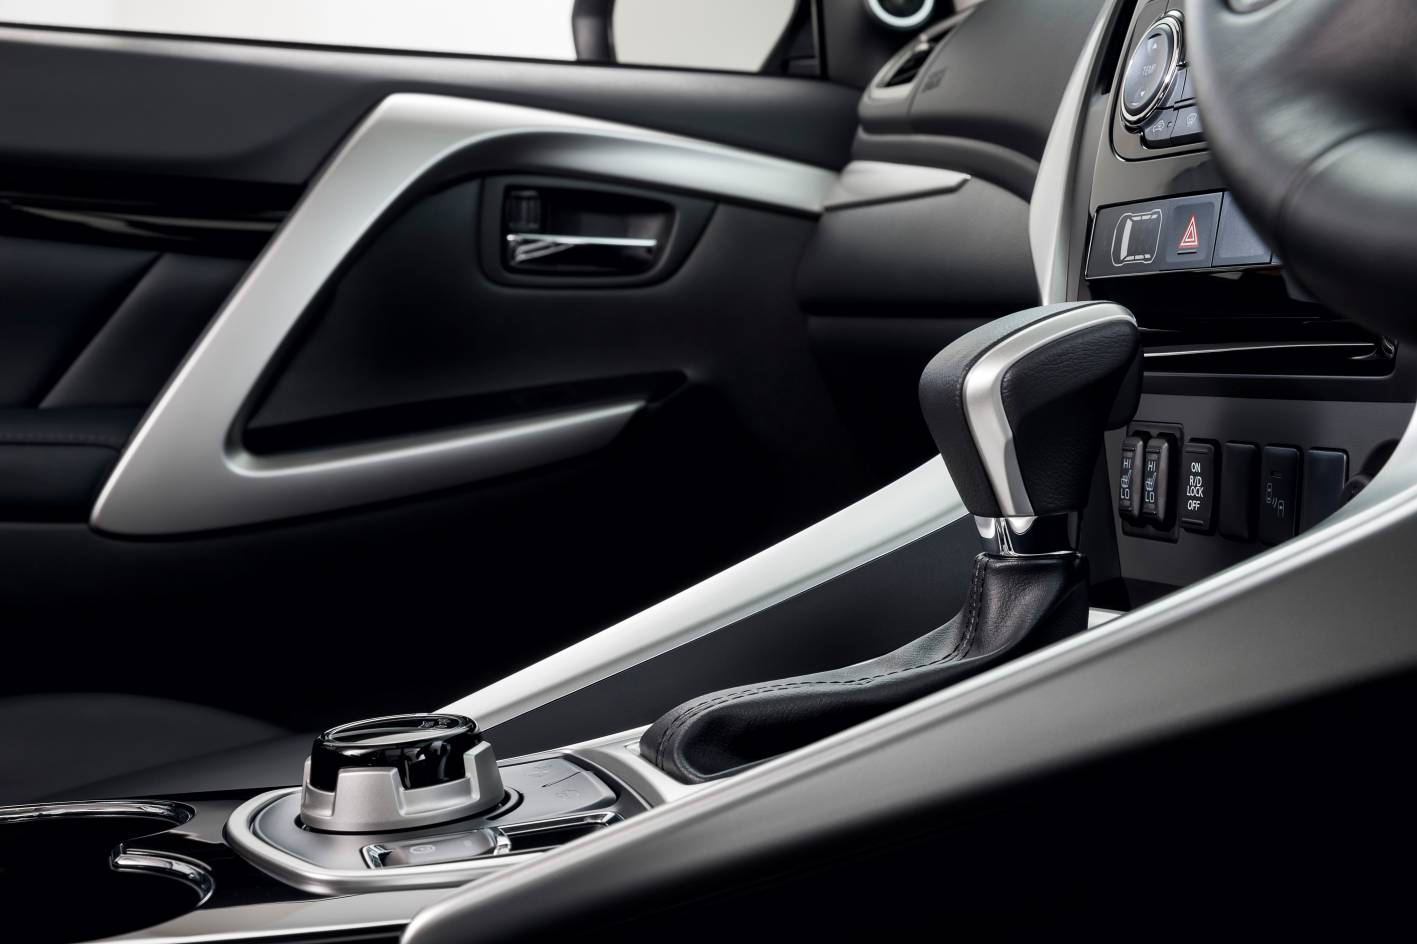 Pajero Sport's interior silver highlights look very classy (win); unfortunately they reflect a lot of ambient sunlight right back at you (fail)...